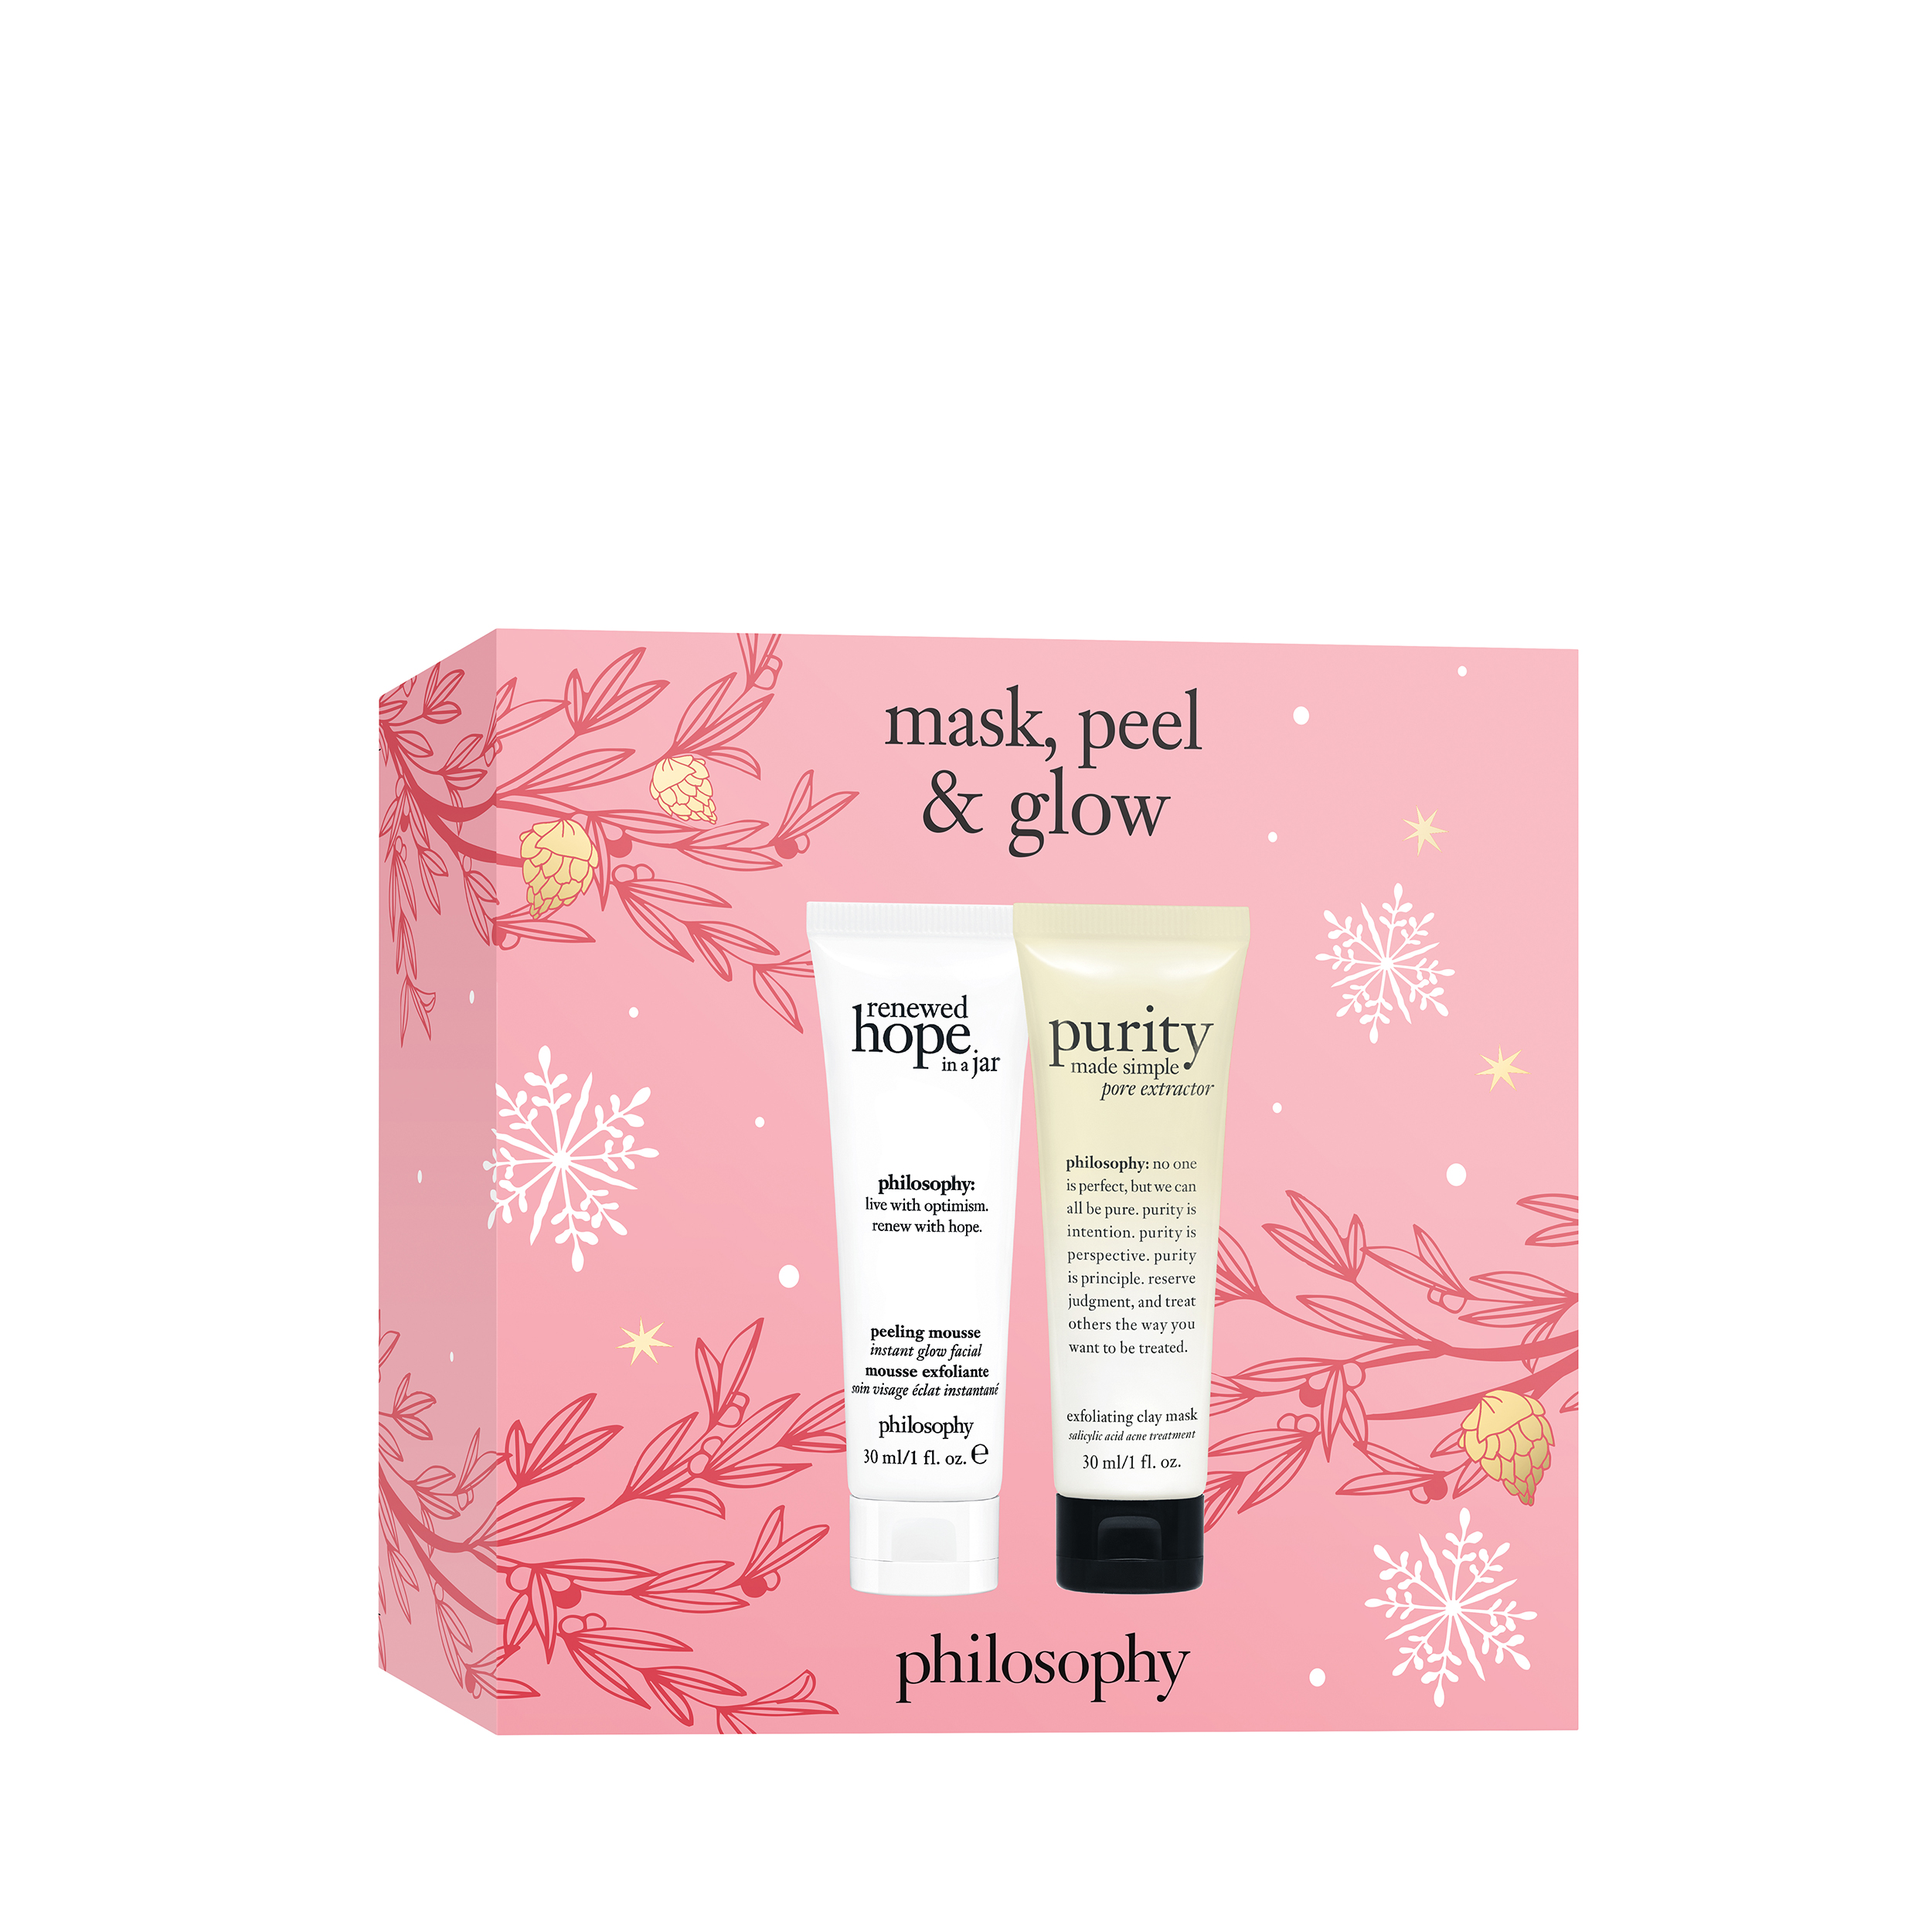 mask, peel & glow set 2-piece skin care set